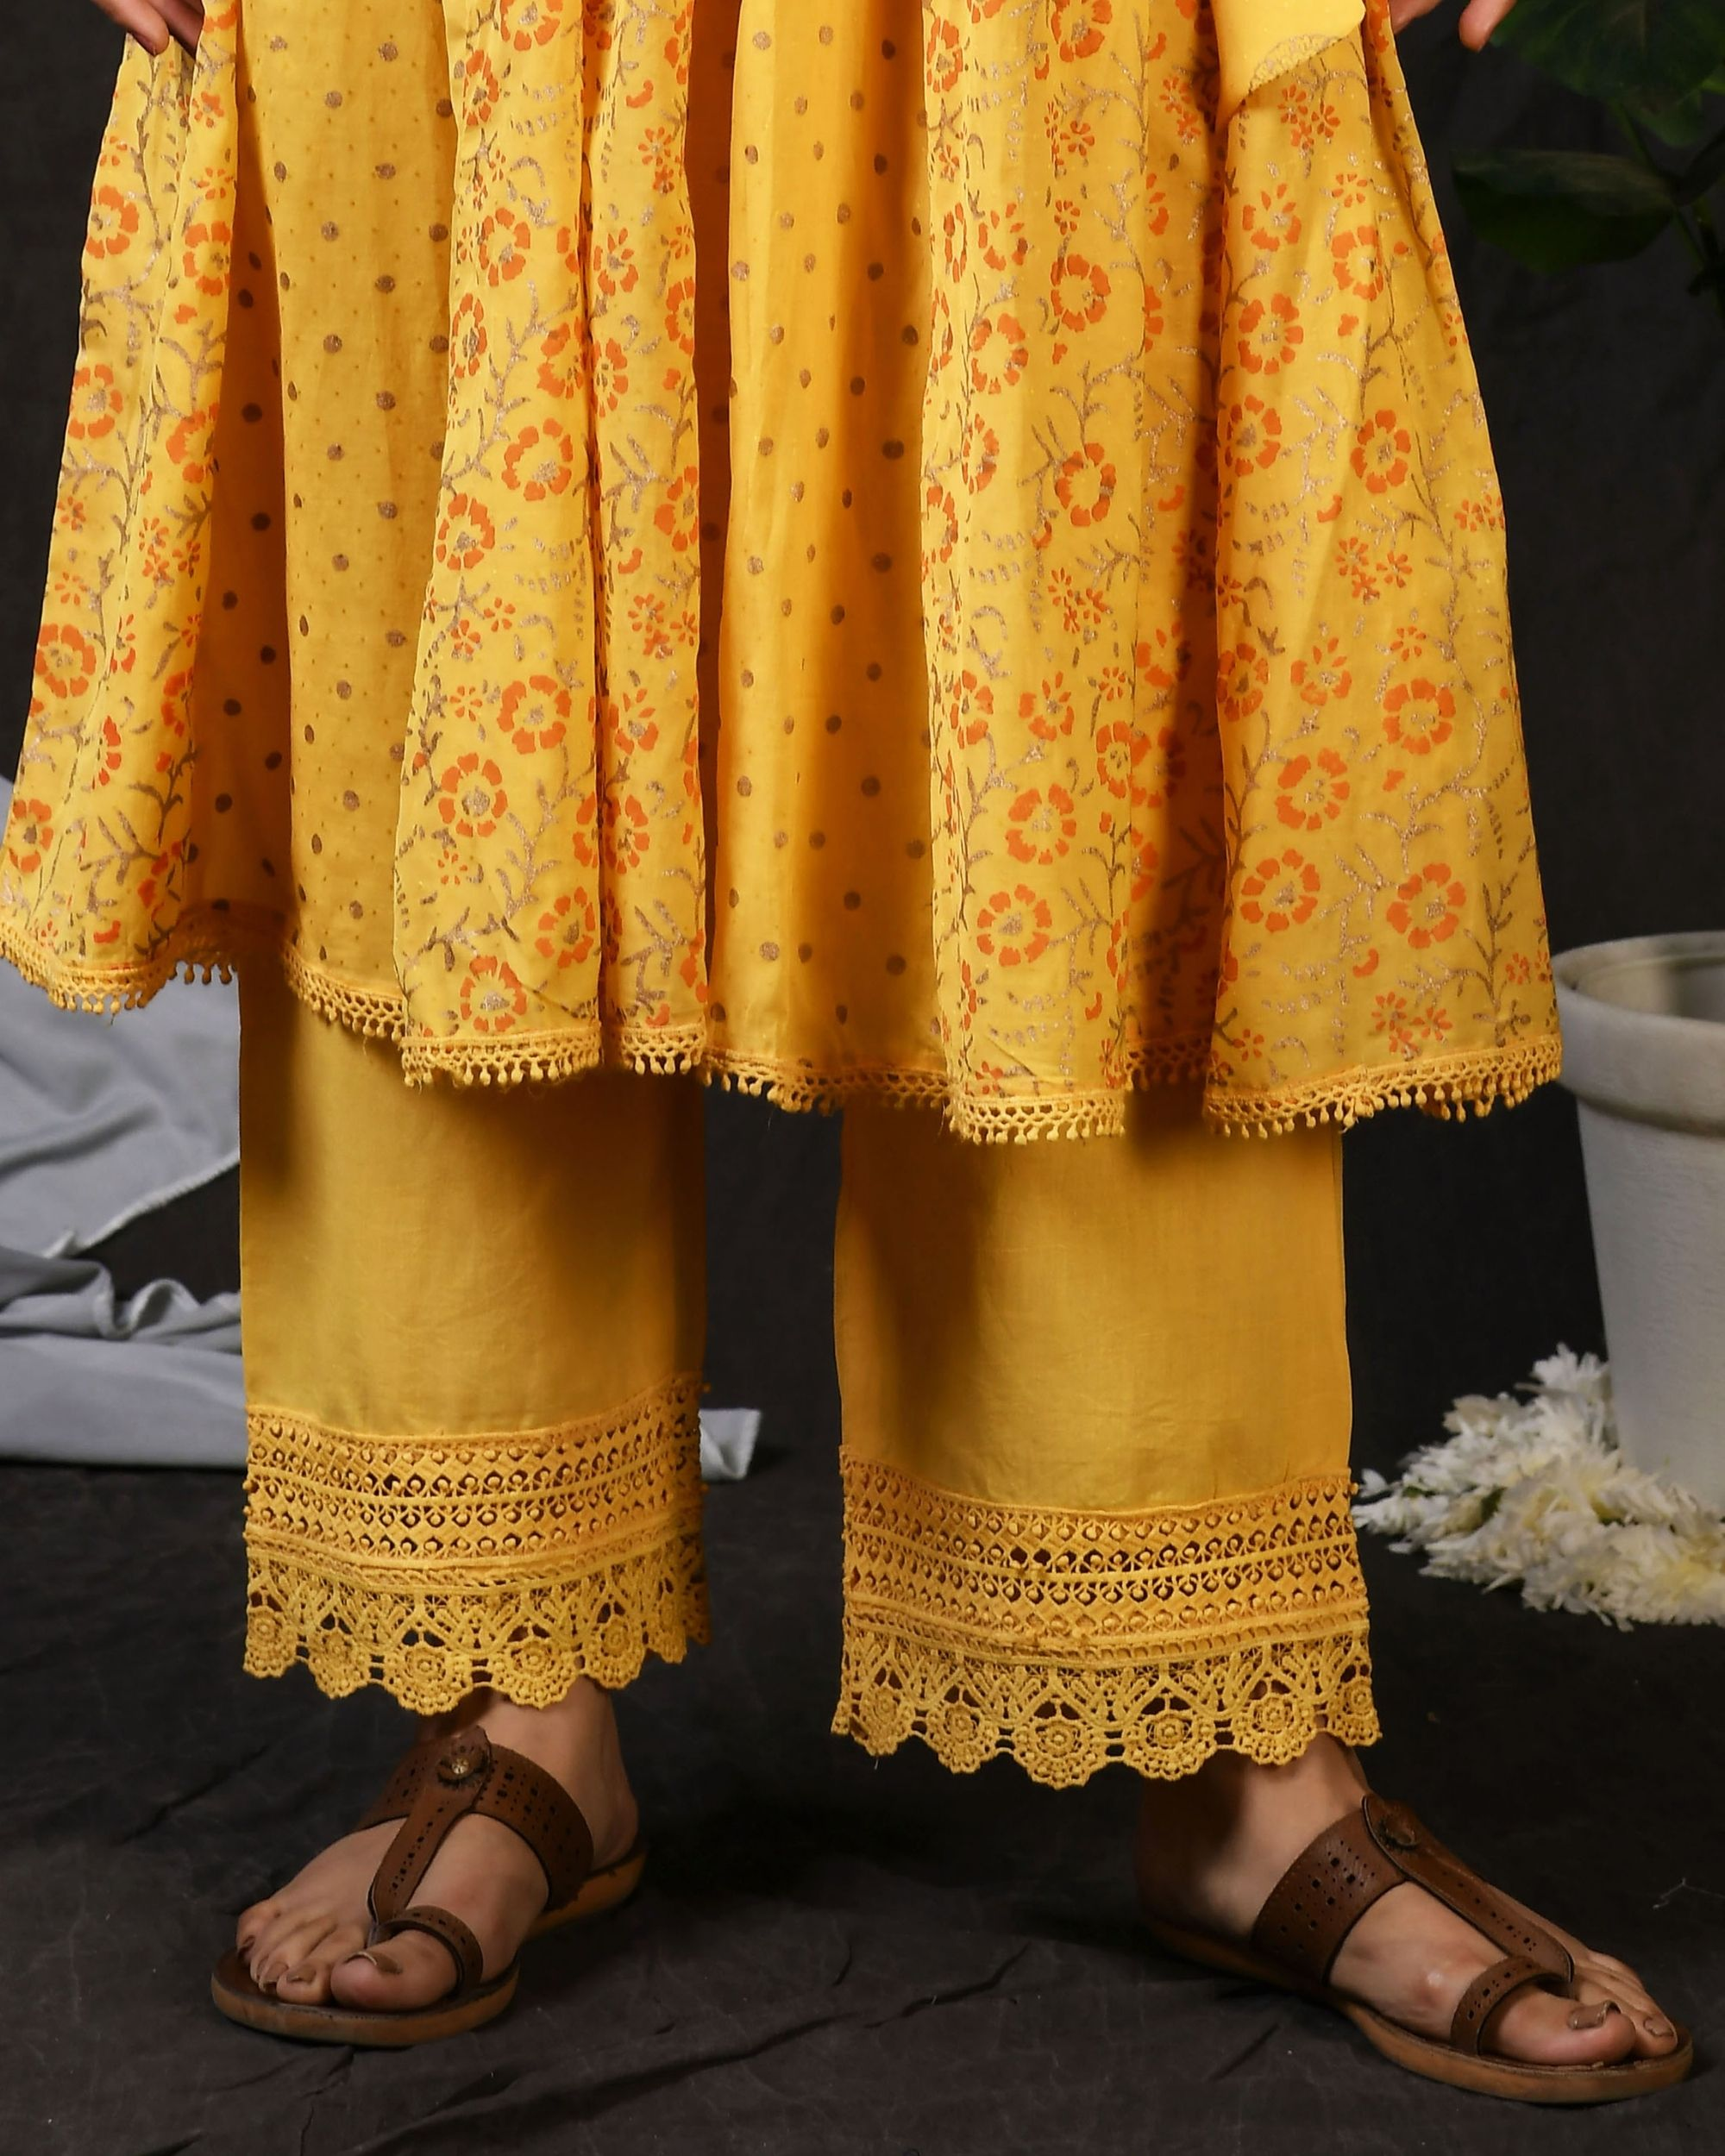 Yellow cotton pants with lace detailing